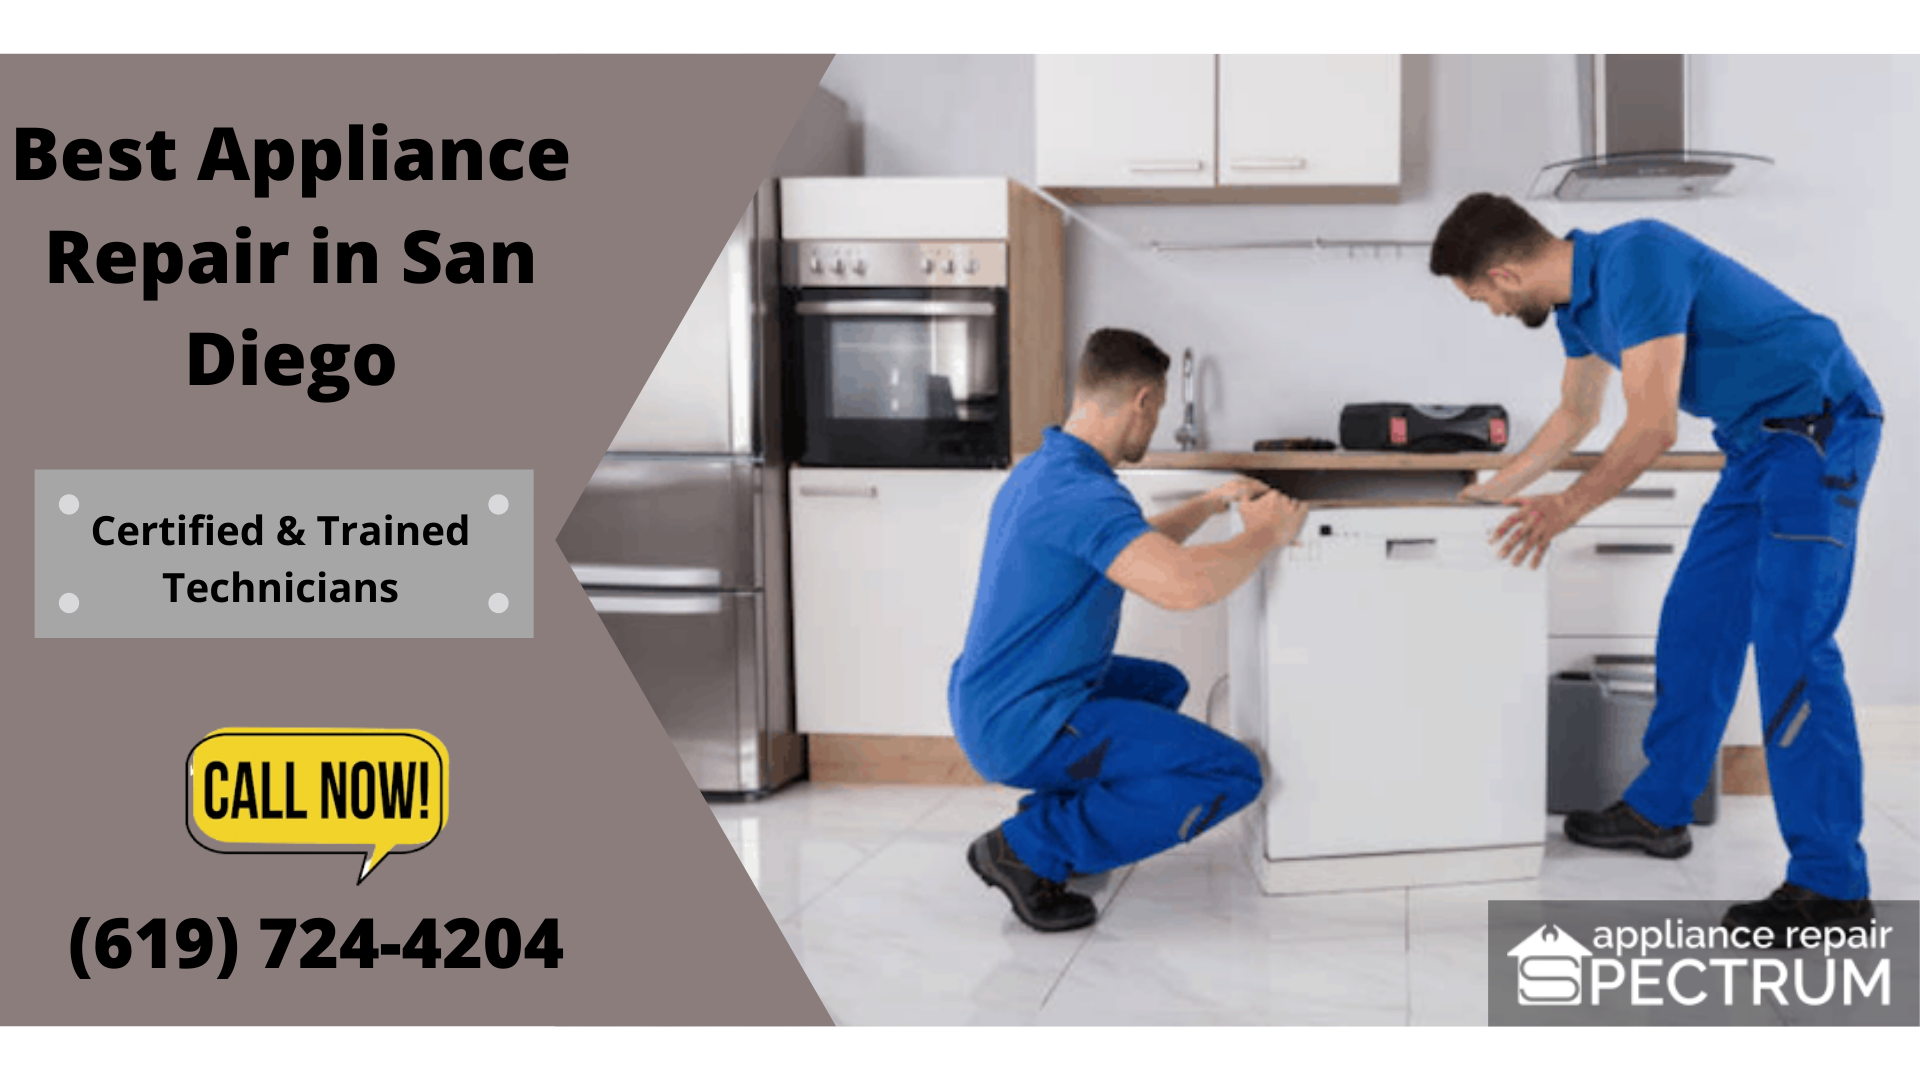 Trained Technicians for Appliance Repair in San Diego